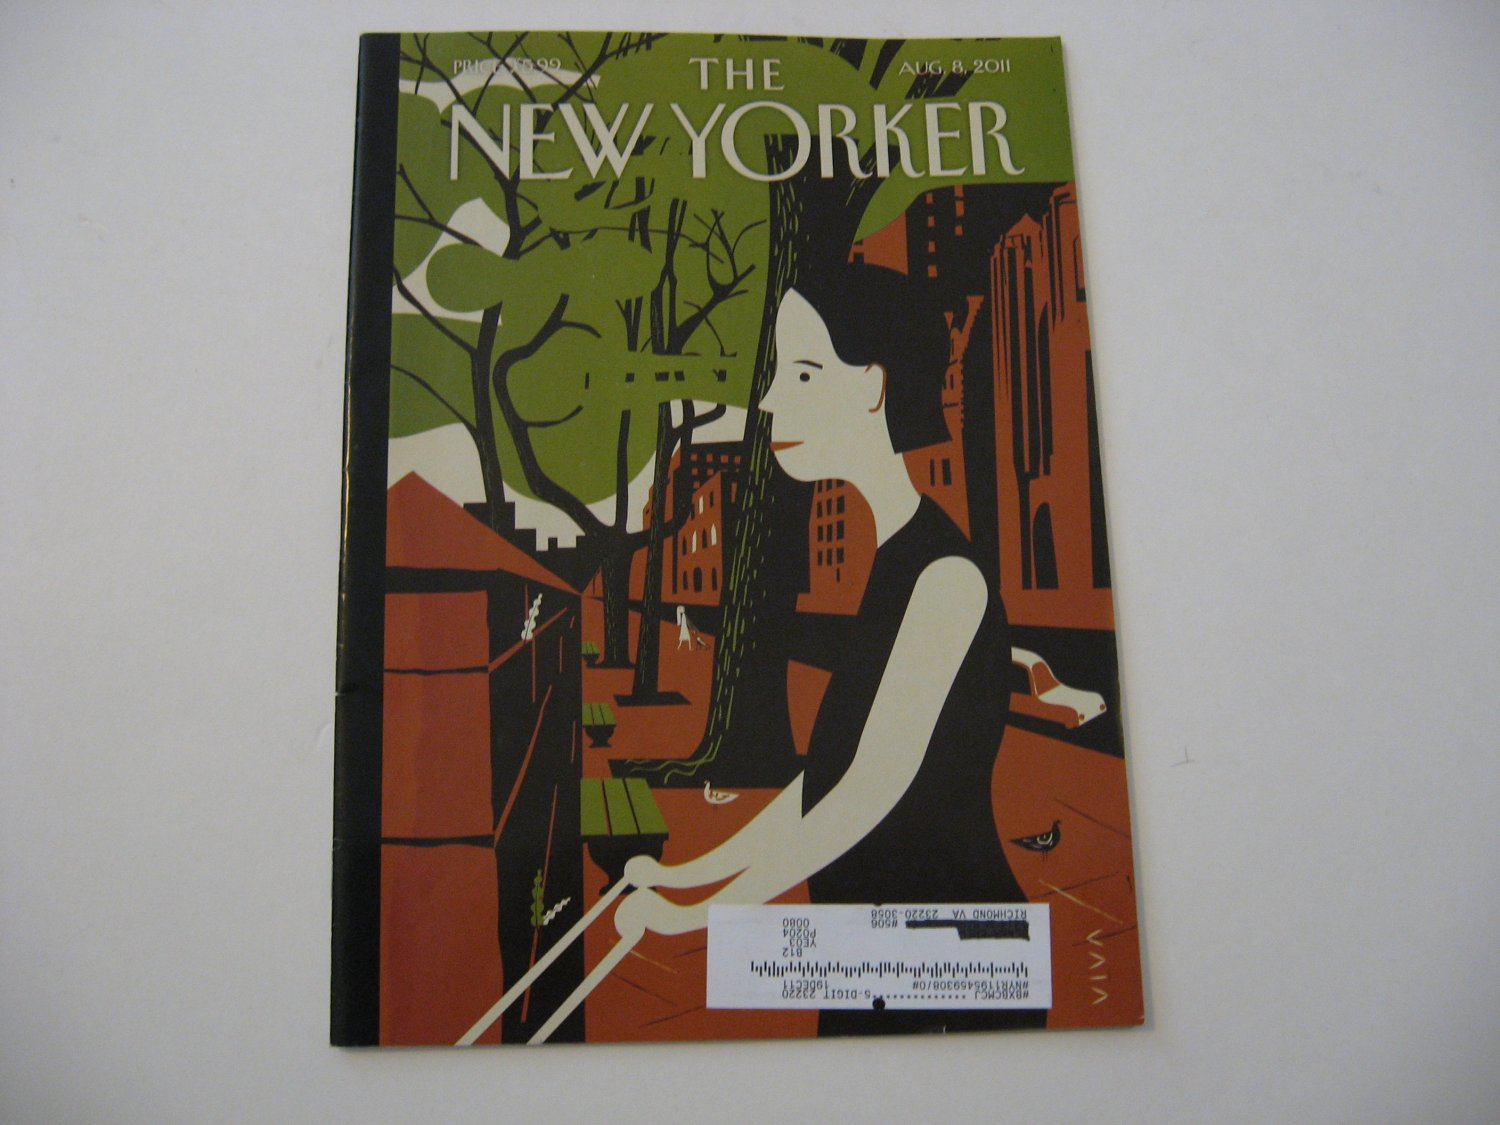 The New Yorker Magazine - Issue Date - Aug. 8, 2011